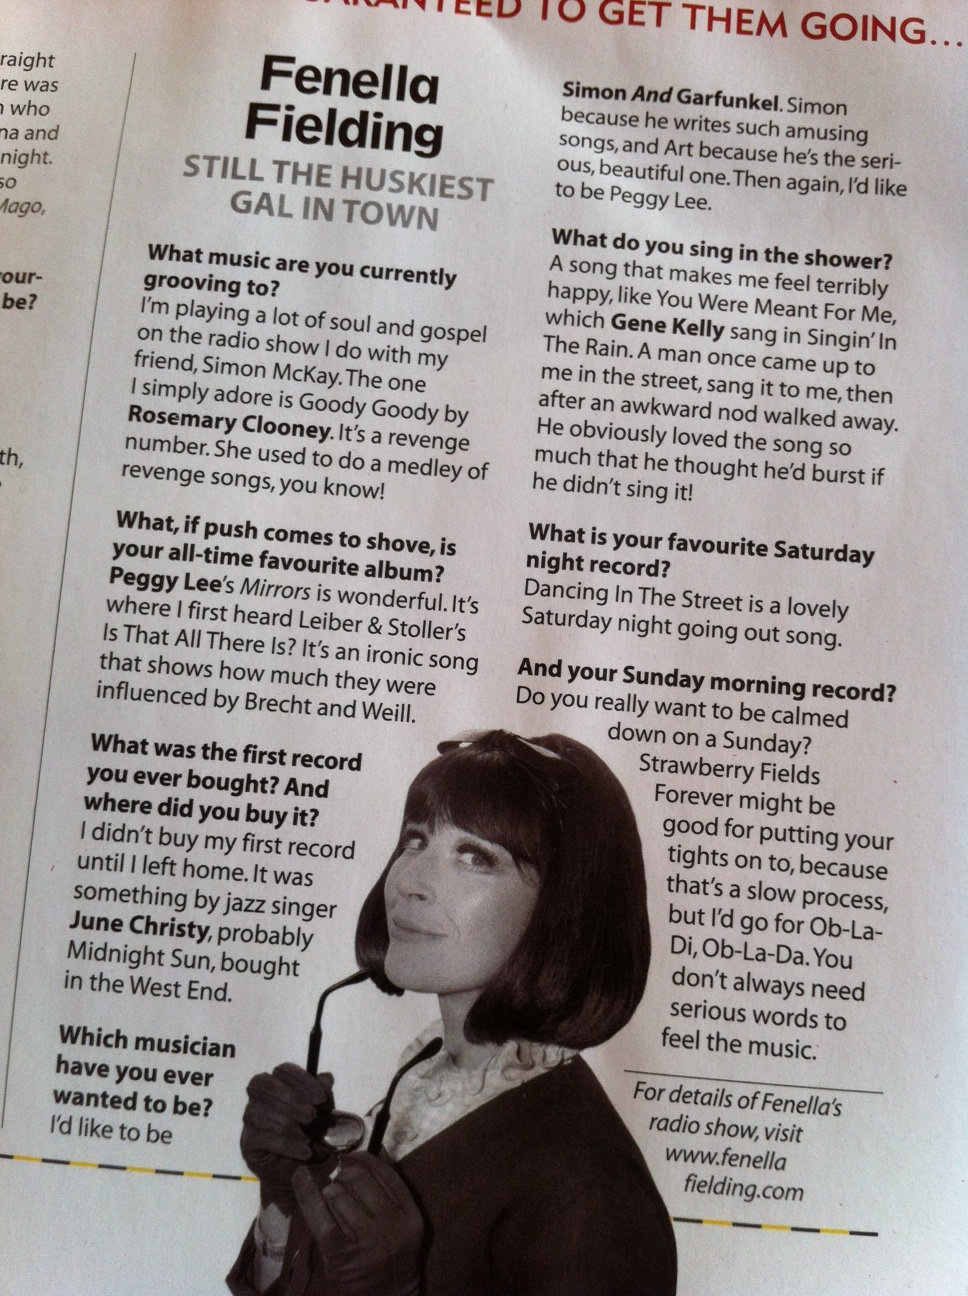 Fenella Fielding - the music she likes and her radio shows with Simon McKay (Article in Mojo 2012)